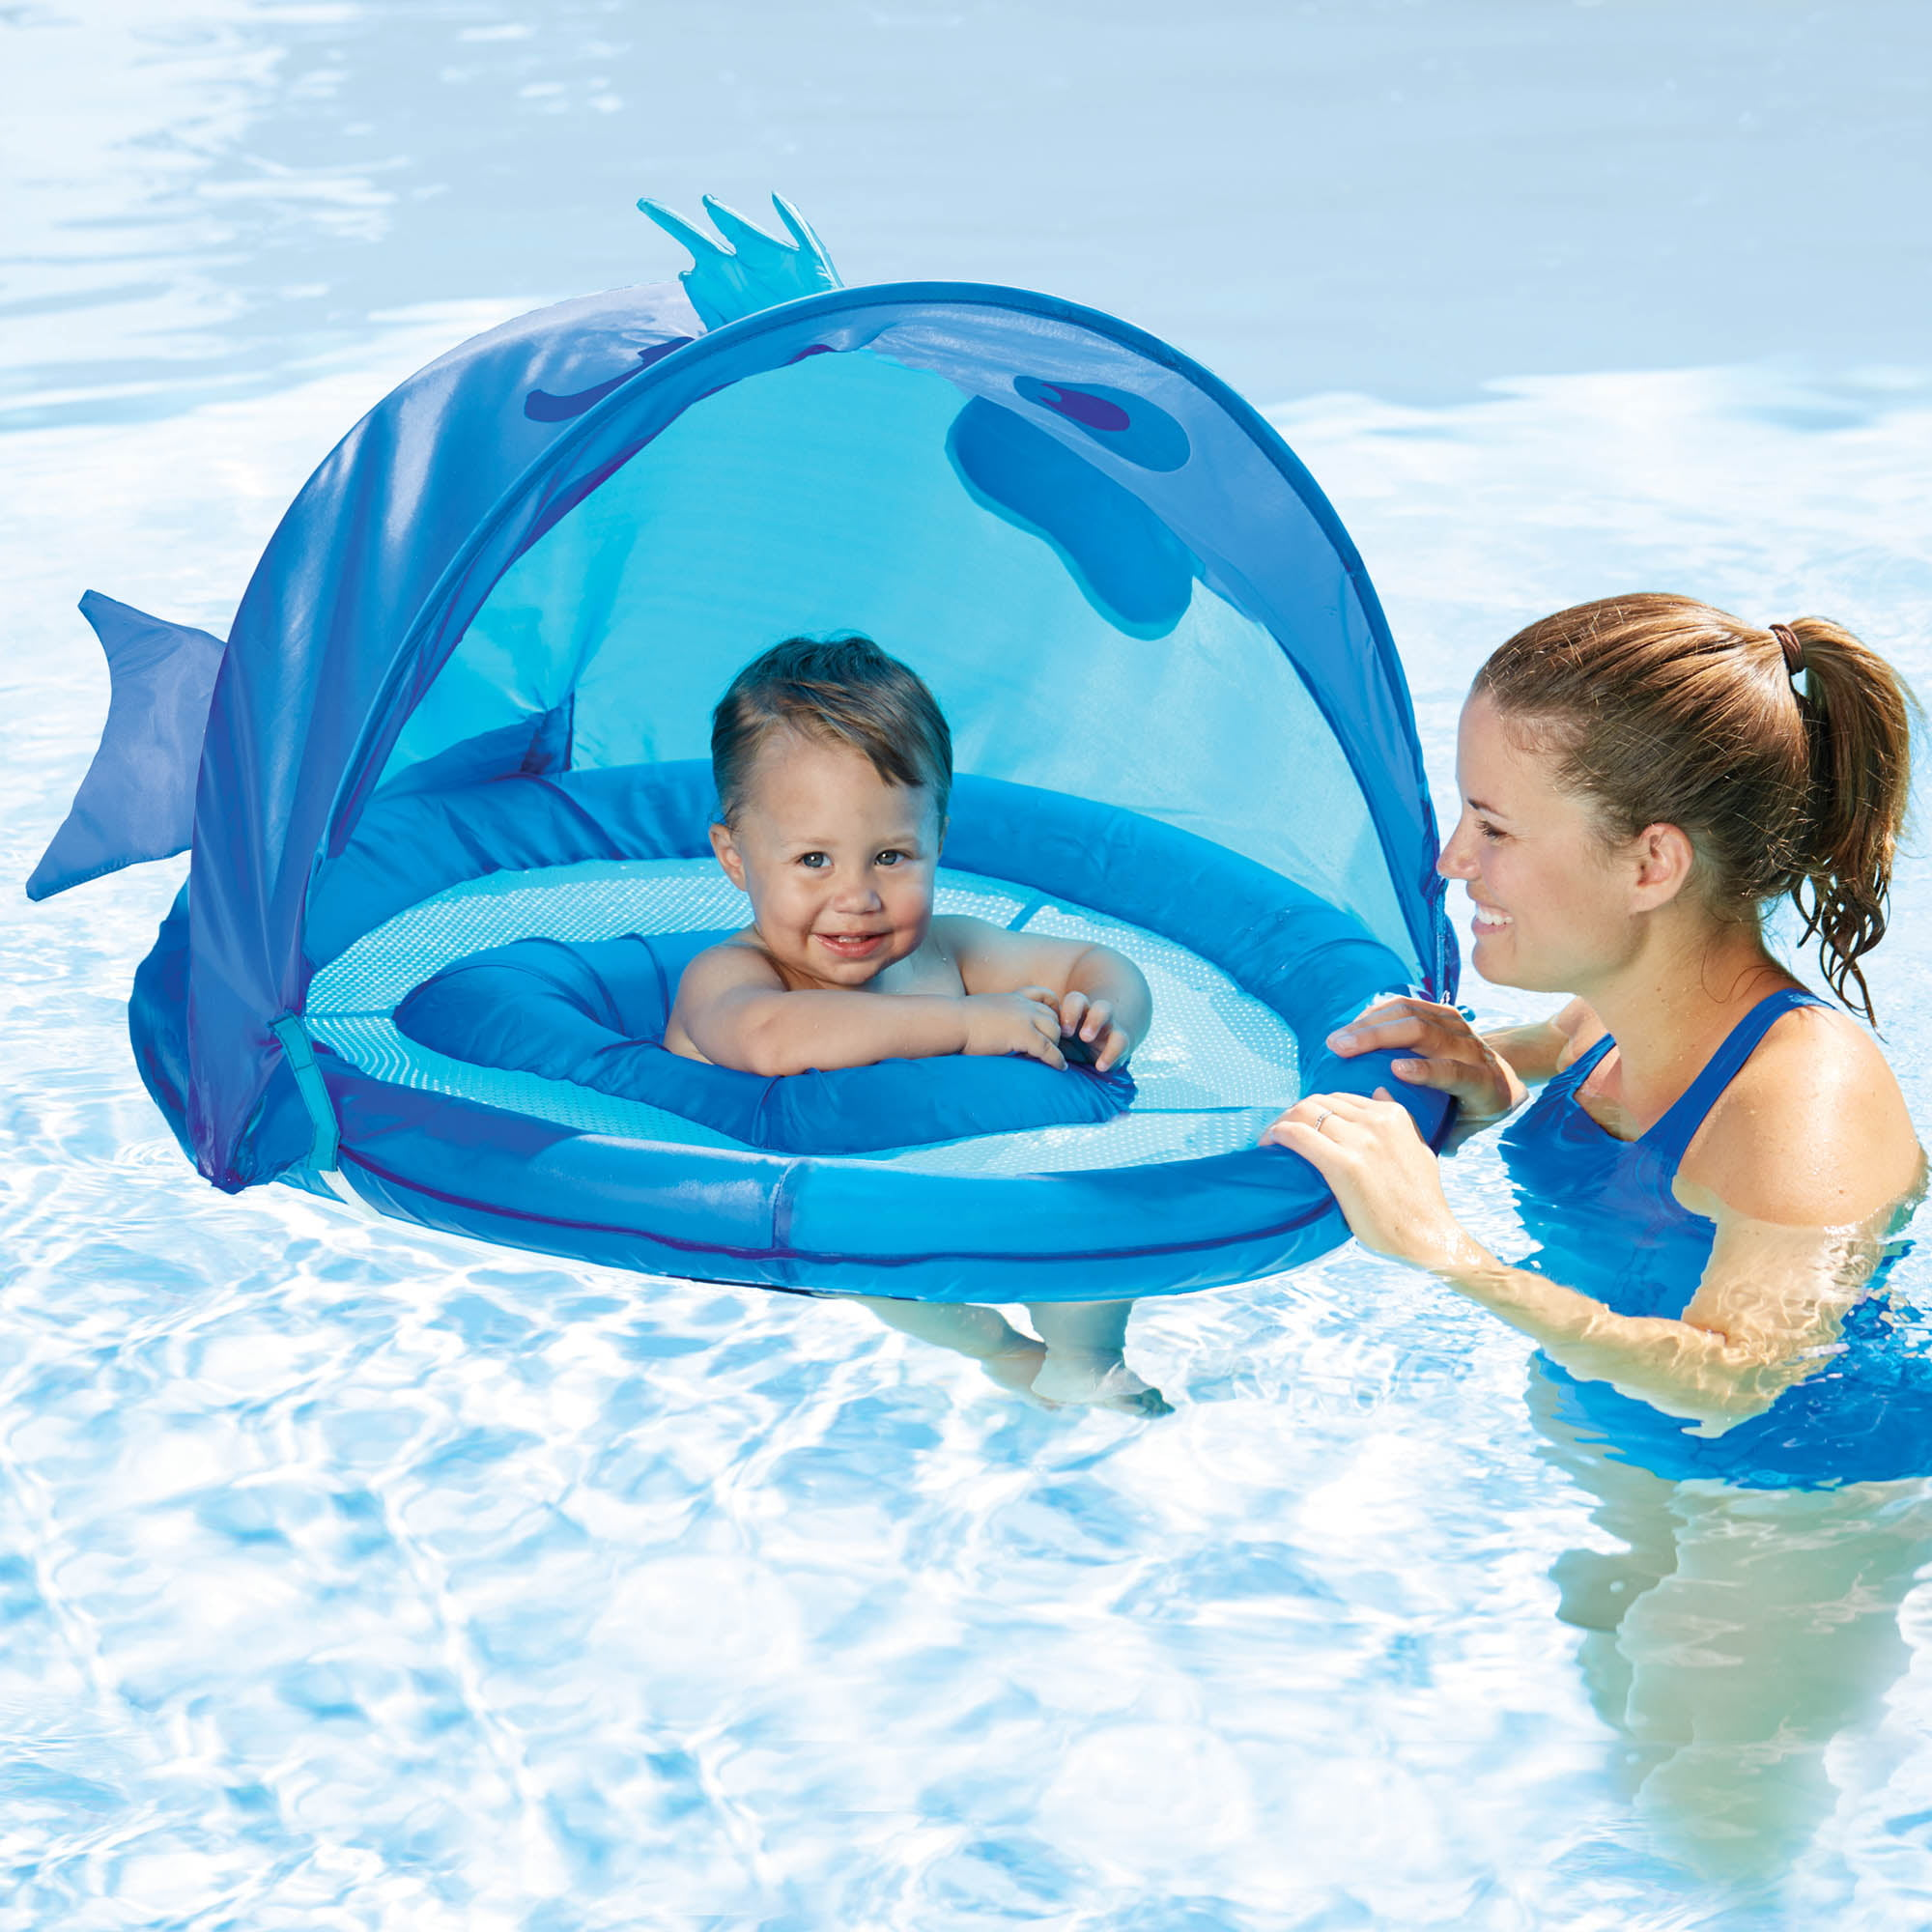 TekkPerry Pool Floats for Kids Baby Baby Swimming Float Ring with Canopy Car Shaped Inflatable Swim Float Boat for Infant Toddler